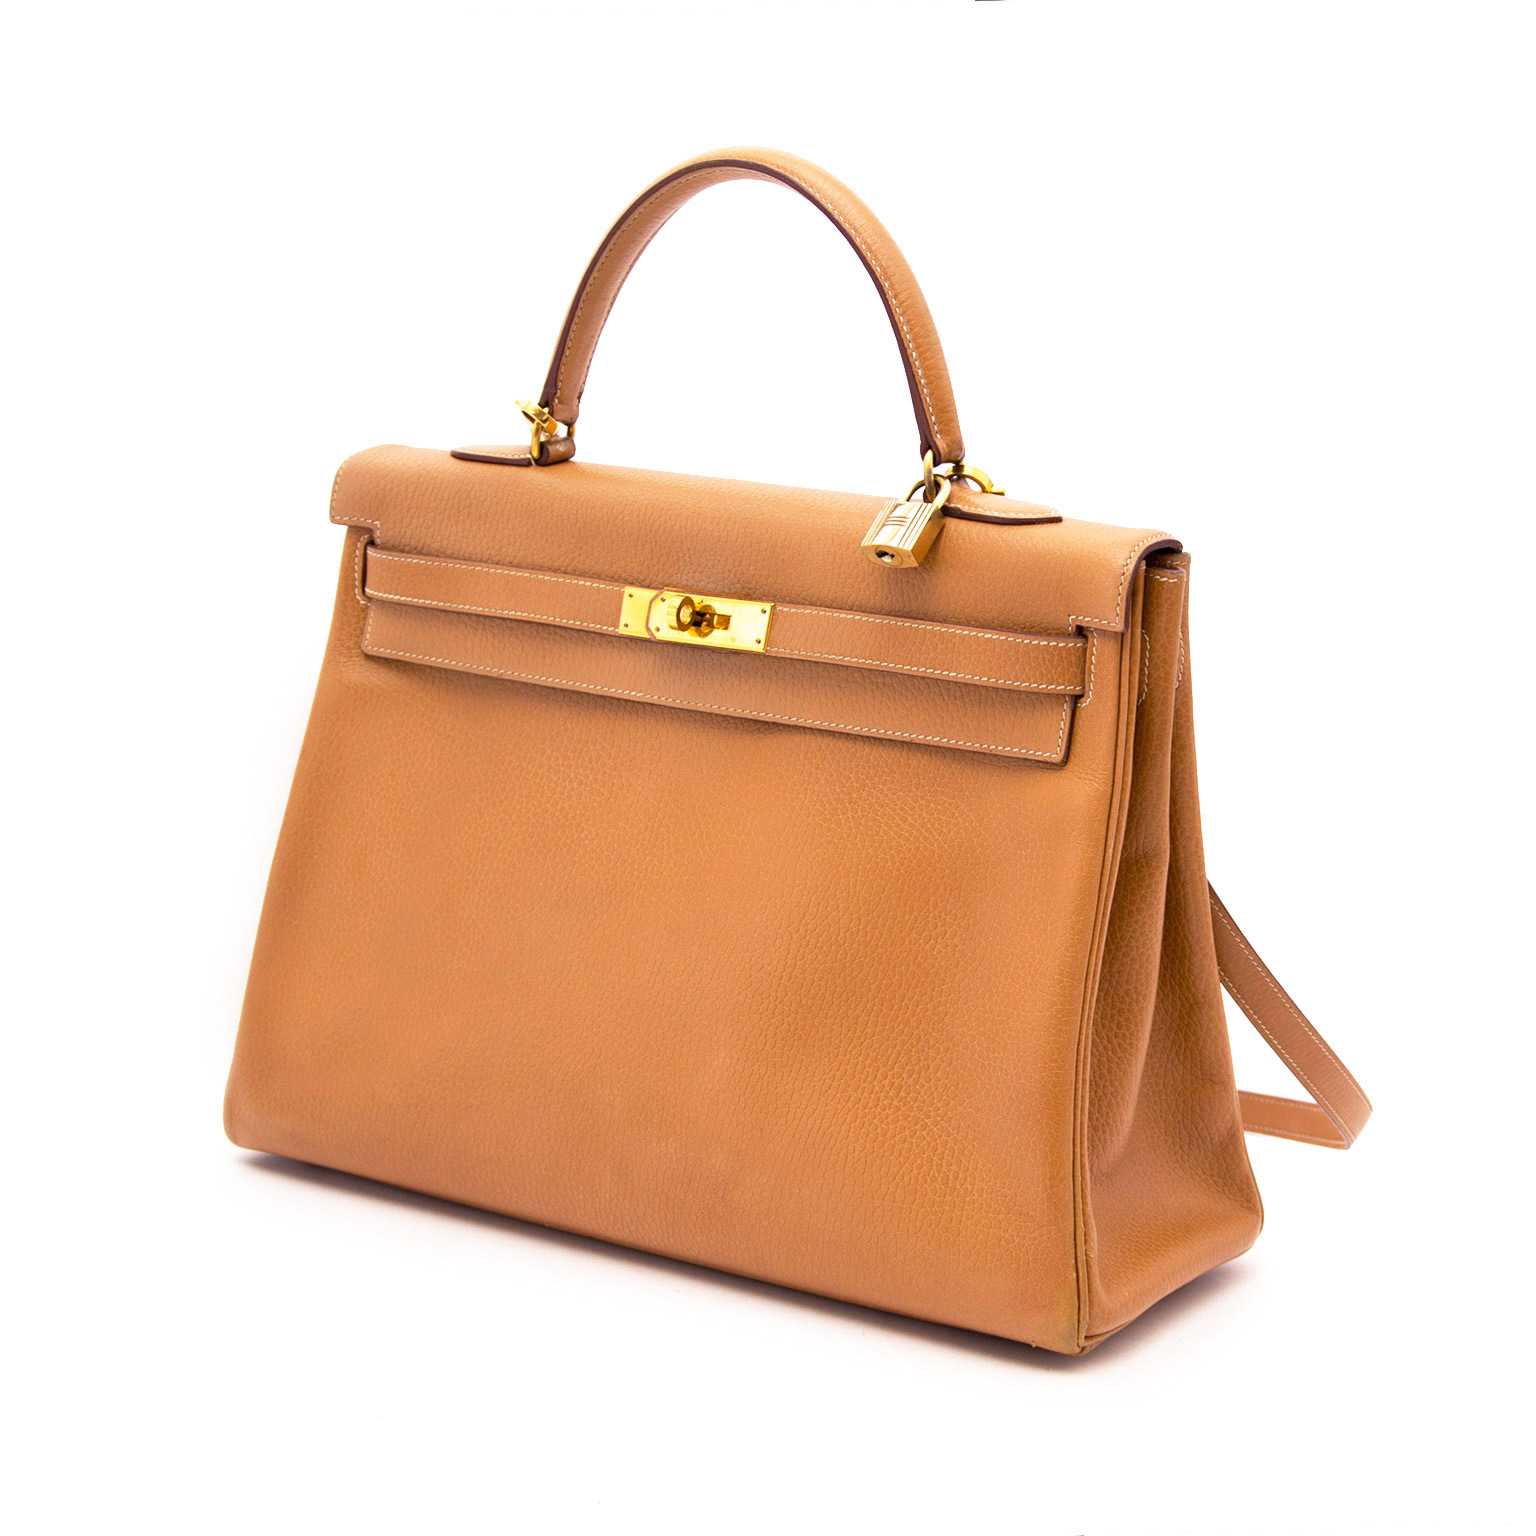 bb9b4be9198 ... shop safe online Hermès Kelly Camel Vache Liegee 35cm GHW at the best  price · Hermes